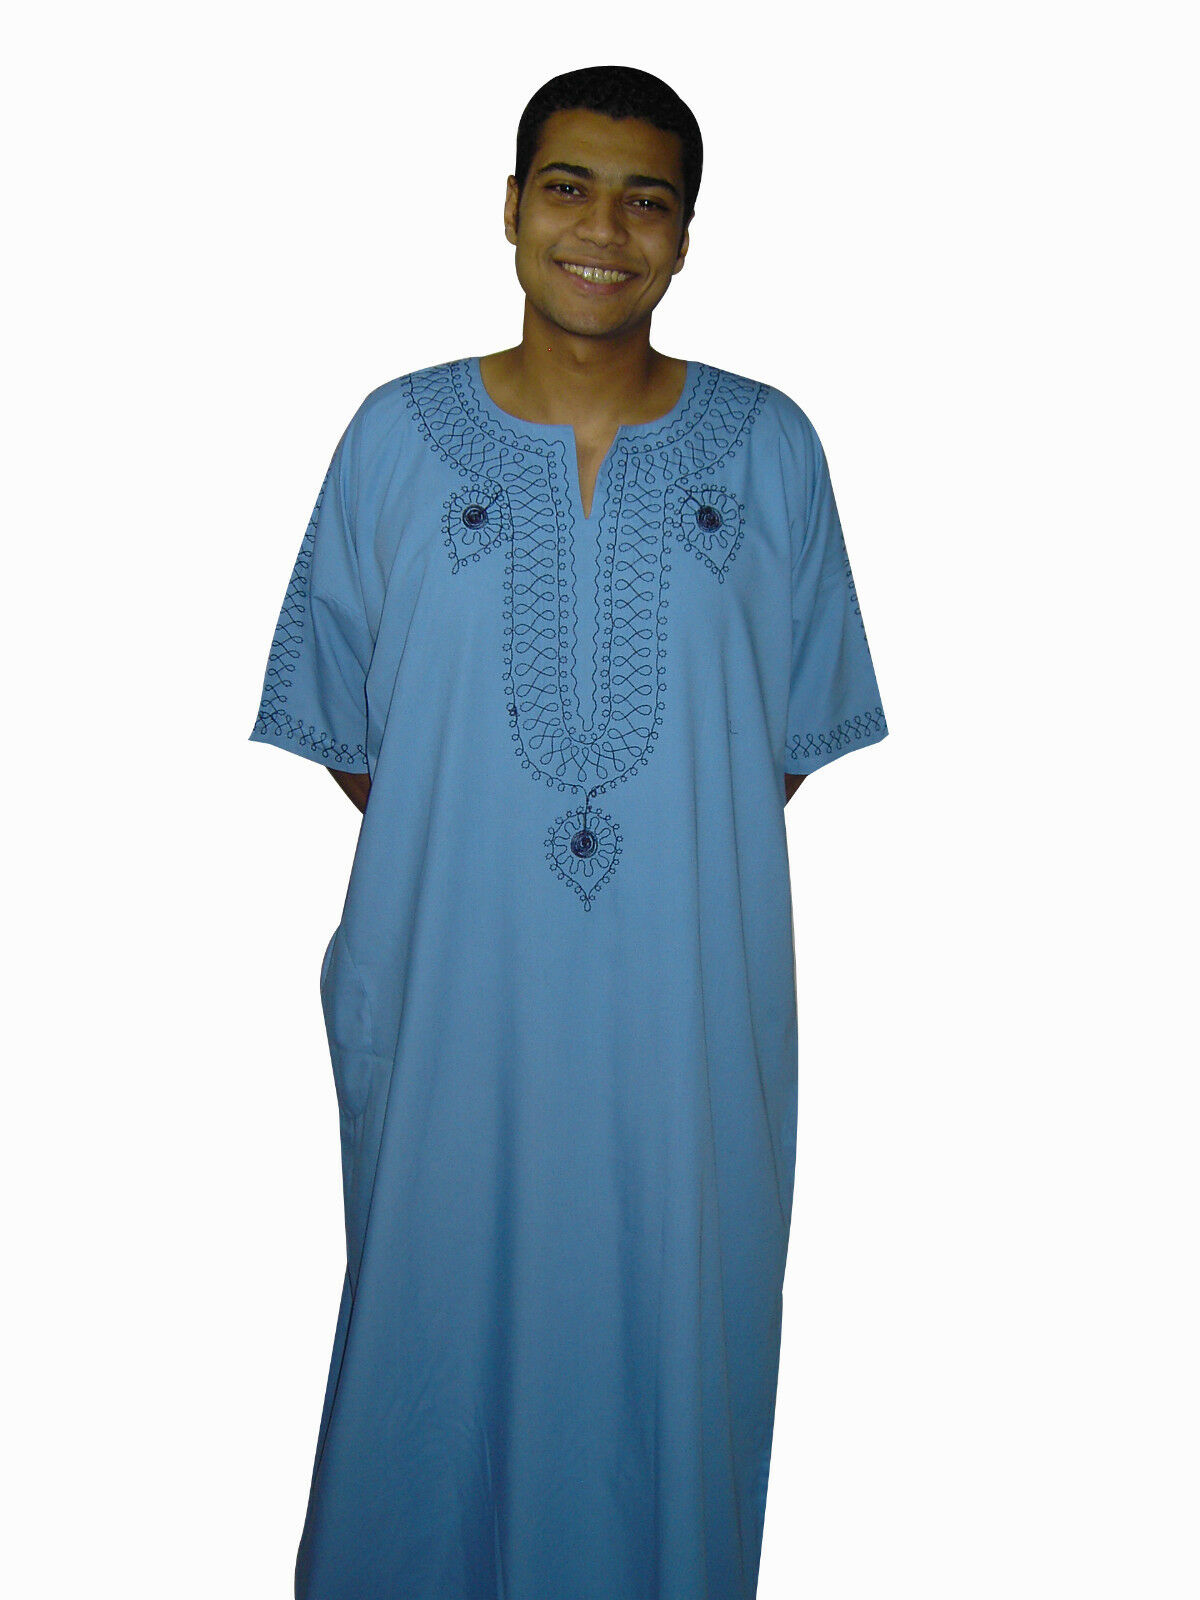 Modern Men's Caftan Housecoat Aus1001 Night Light bluee Kam00541